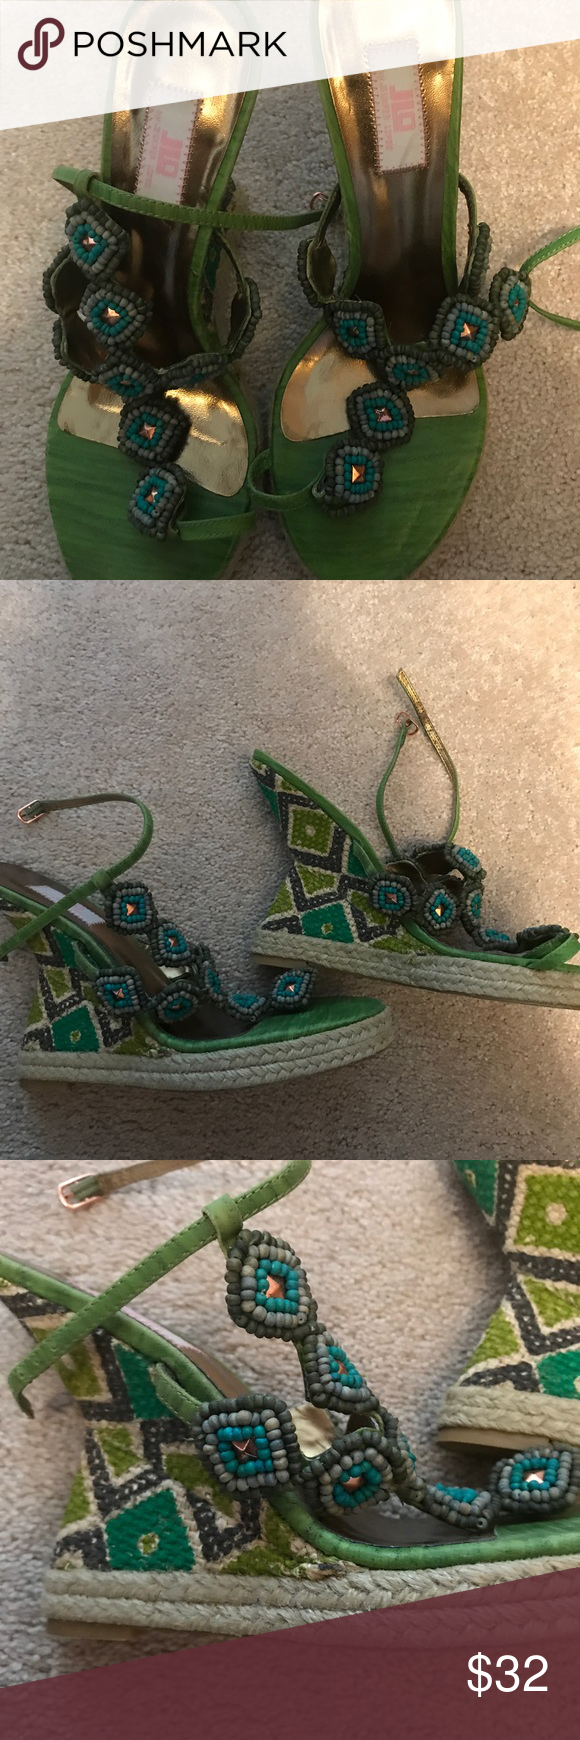 JENNIFER LOPEZ BEADED AZTEC WEDGE SANDALS GORGEOUS JLO BEADED AZTEC WEDGES. PERFECT CONDITION. WORN ONCE I THINK. SINGLE STRAP TIES AROUND THE ANKLE.  GREEN TURQUOISE GOLD. Jennifer Lopez Shoes Wedges